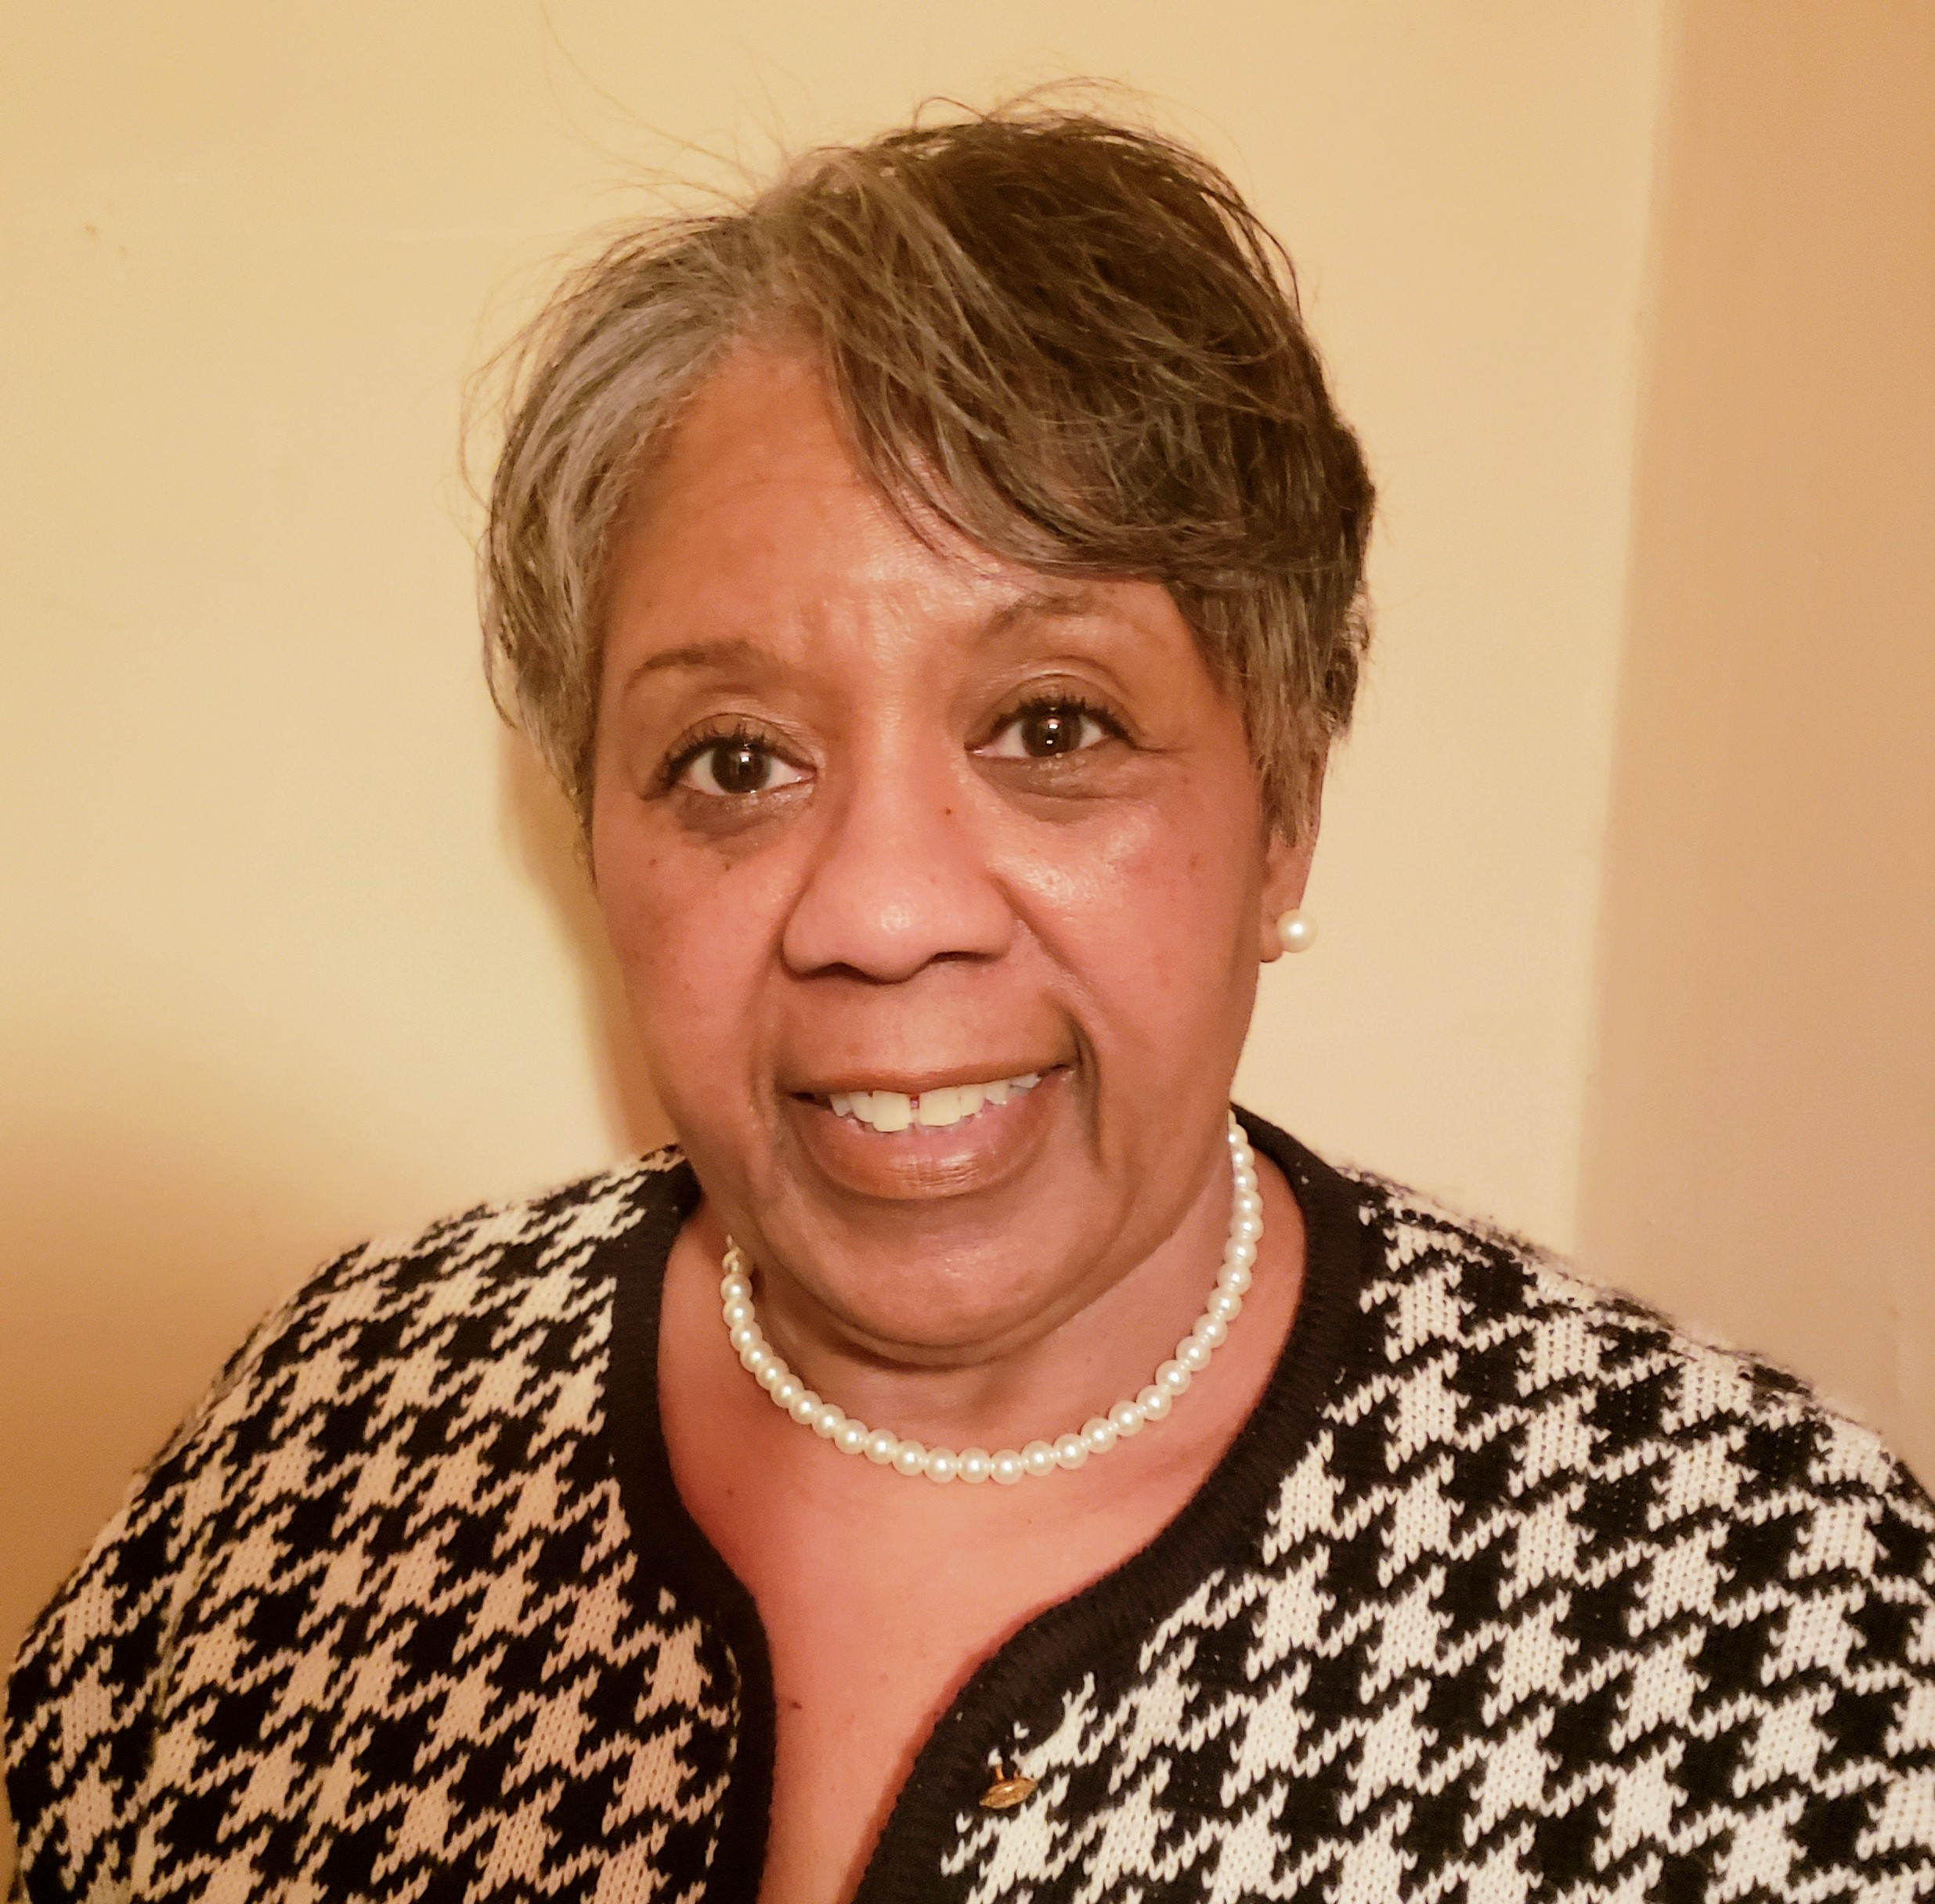 Lynda Gibson, Administrative Assistant